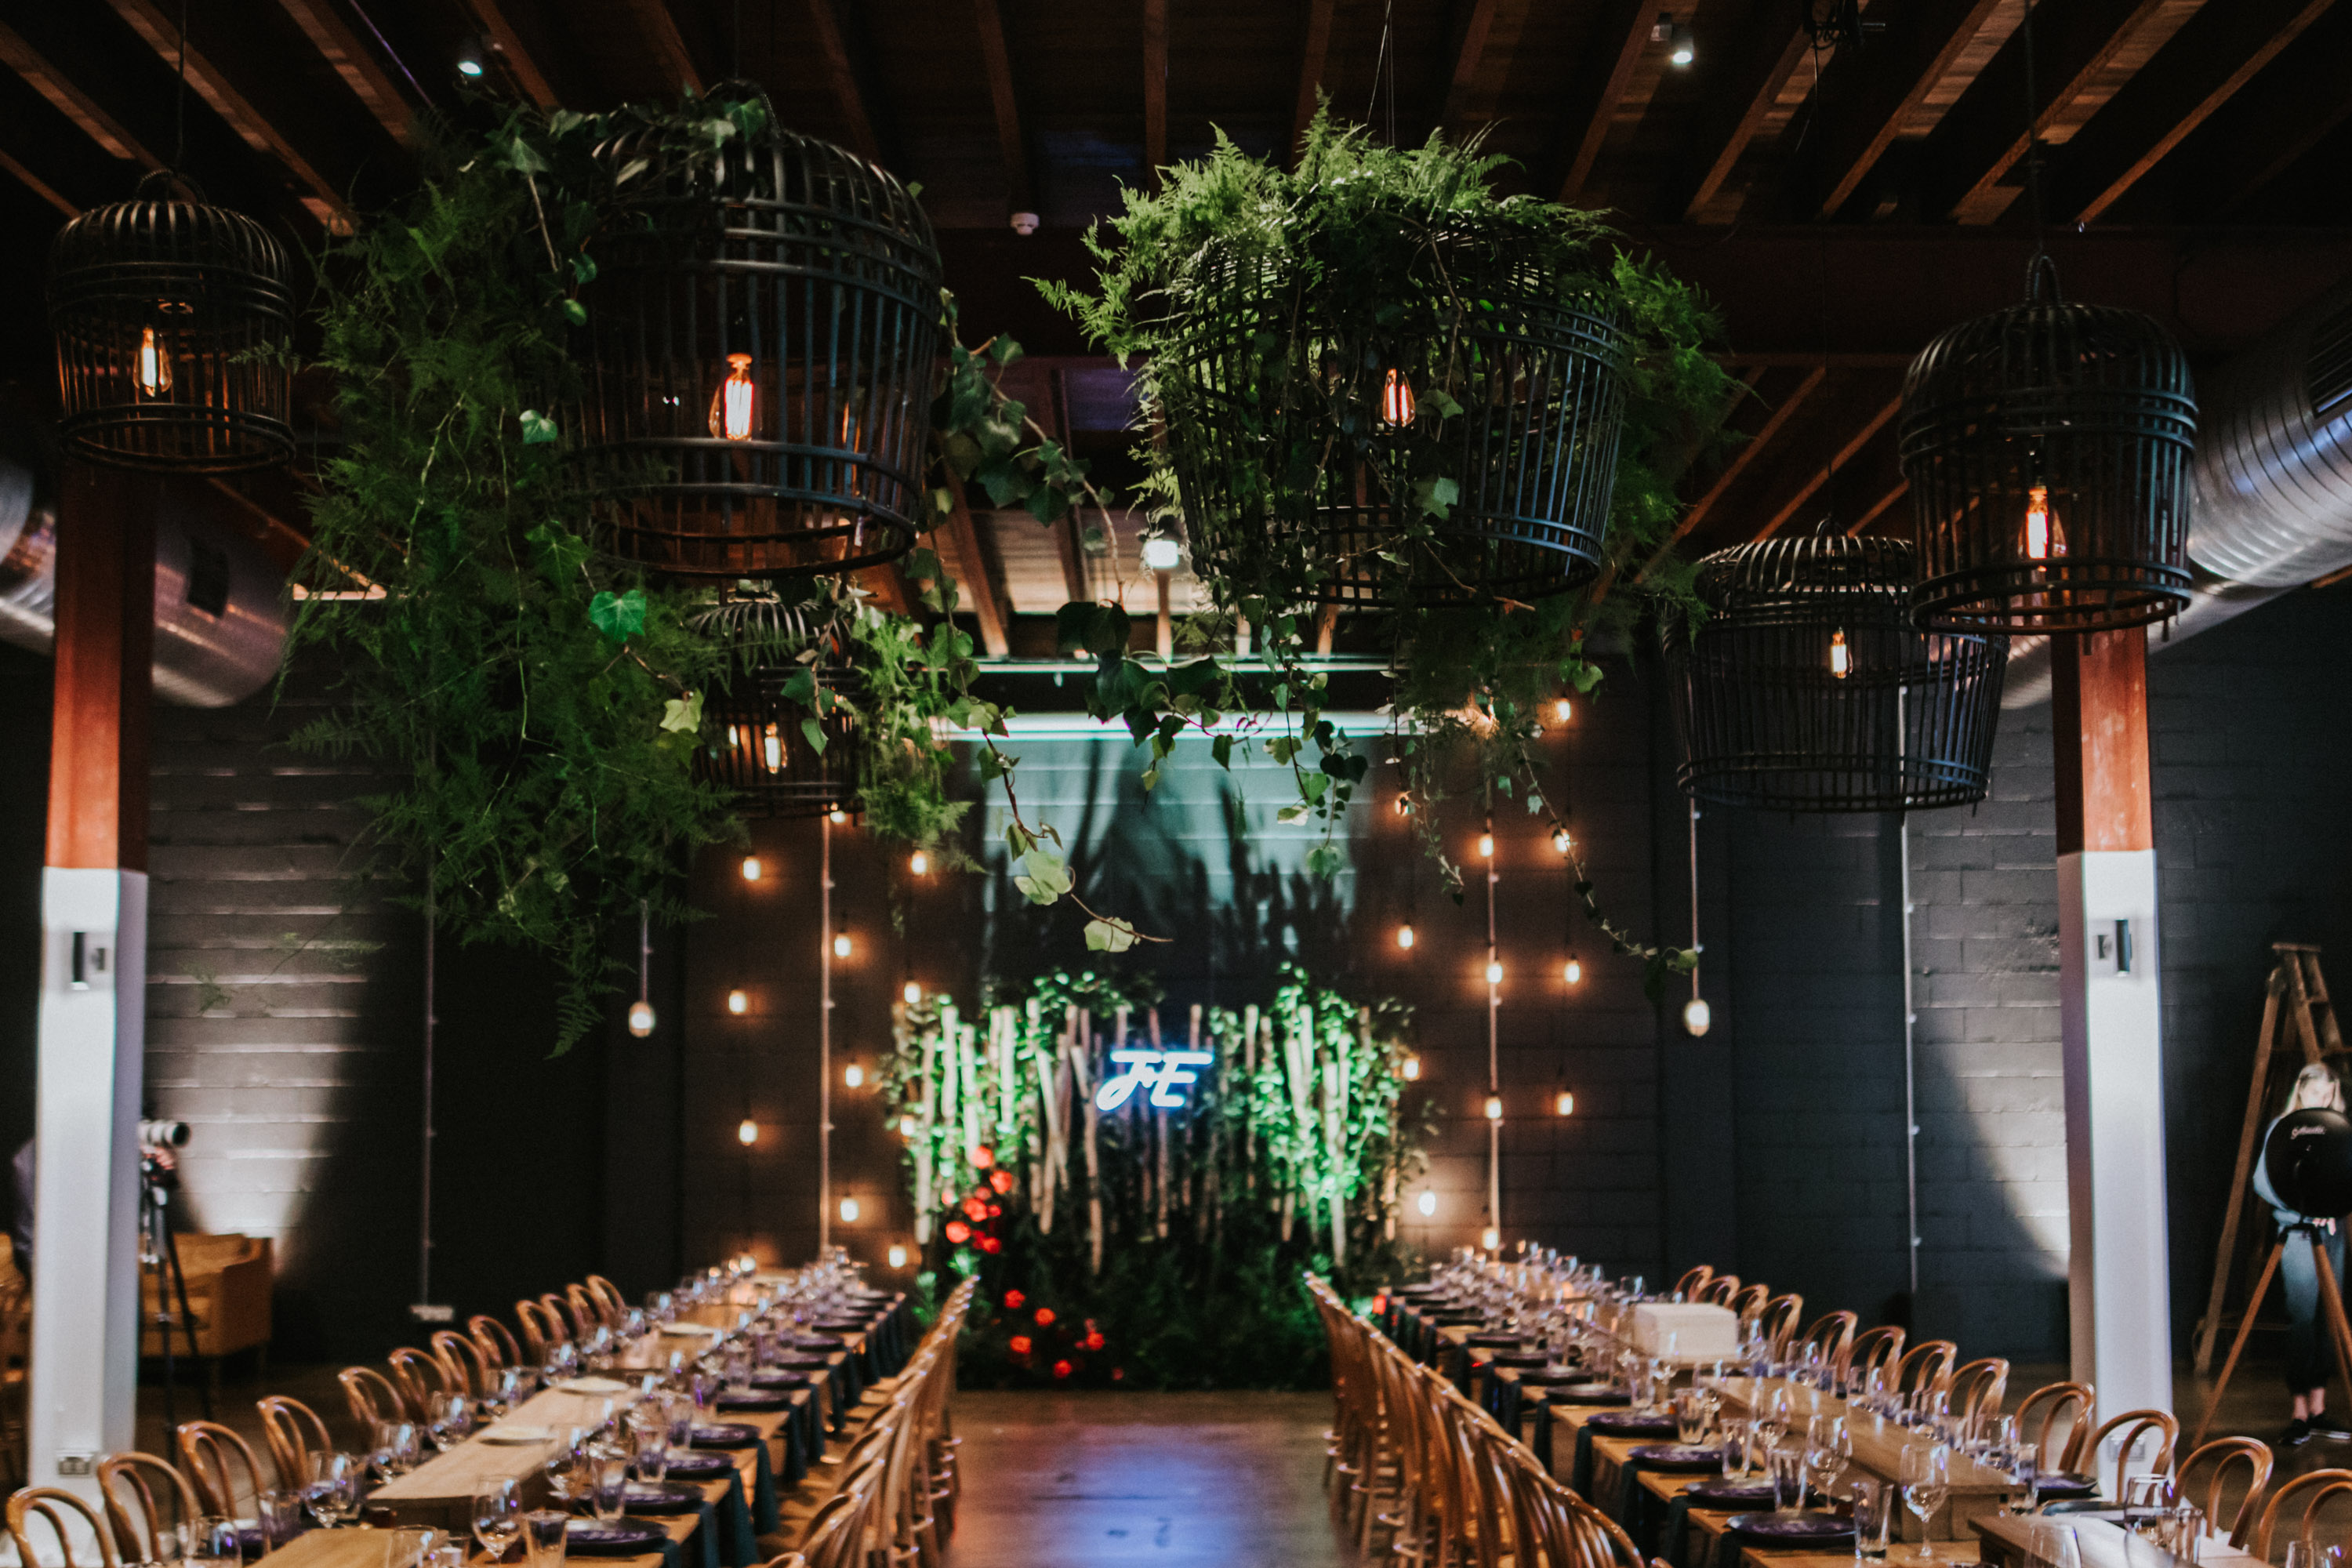 white+white weddings and events the wedding school emily and jack lightspace wedding greenery ceremony florals suspended hanging bentwood chairs asha reception table table number whole room long tableware neon sign hanging roof full room